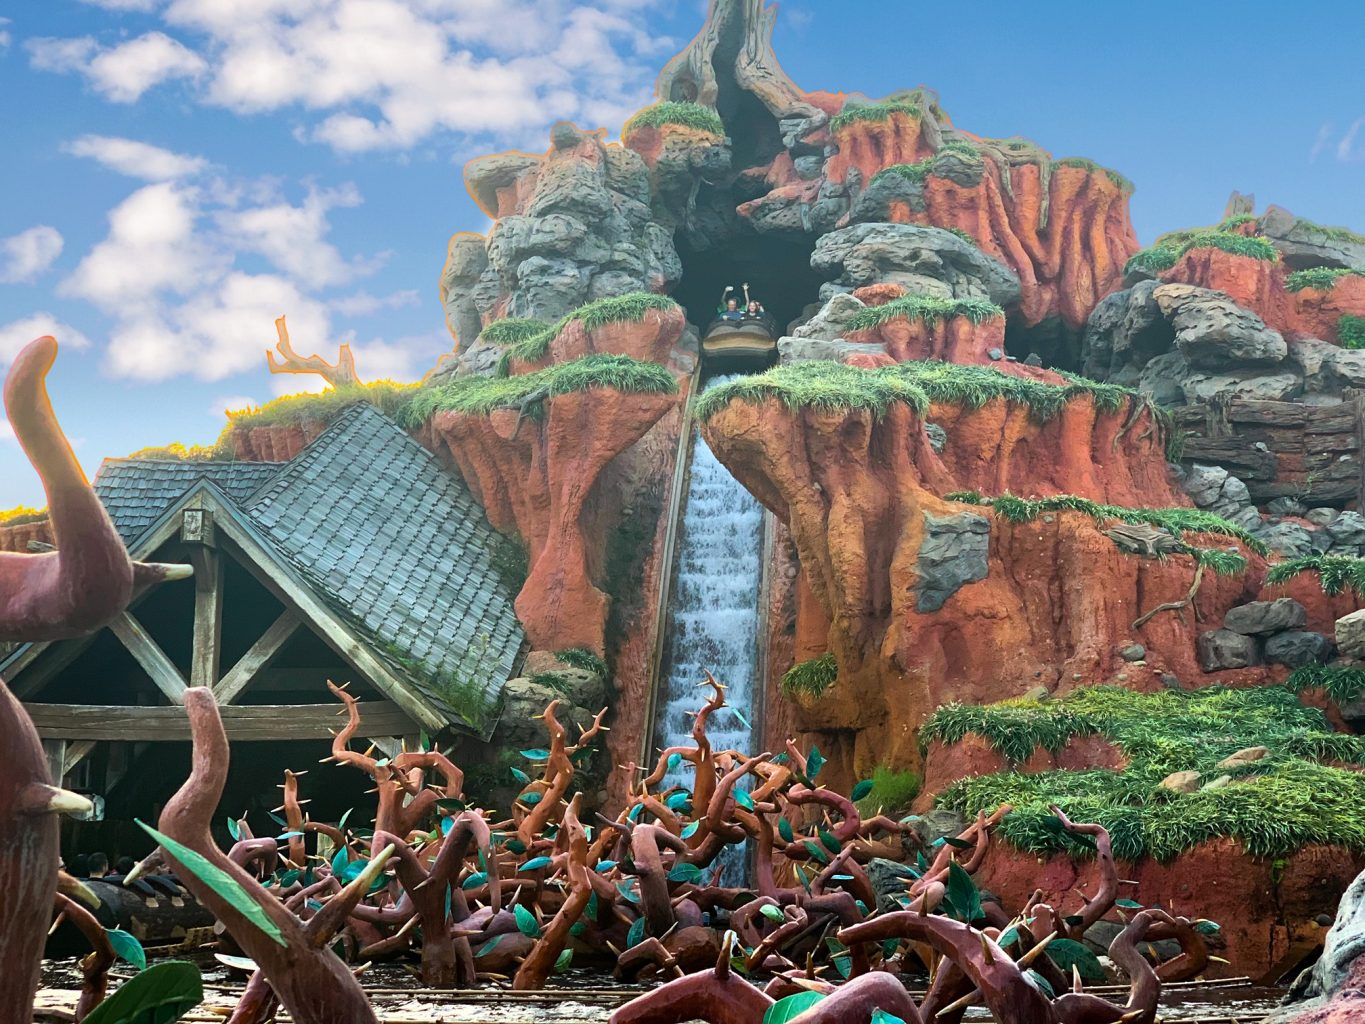 Splash Mountain is one of the best Fast pass options at Disney